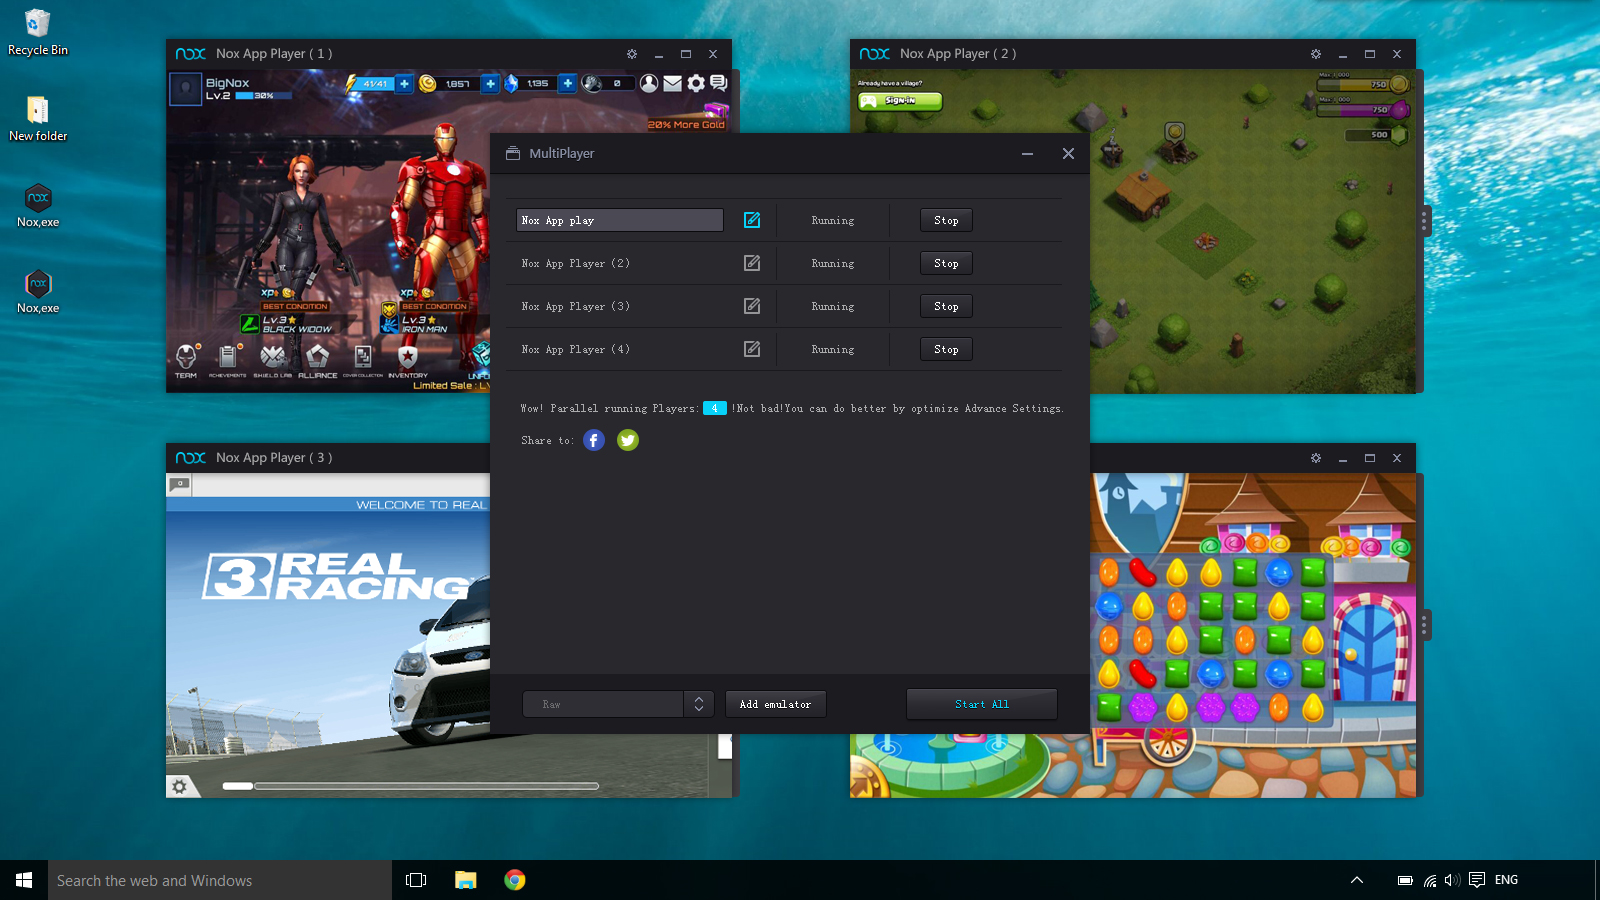 12 Best Android Emulators For PC And Mac of 2018